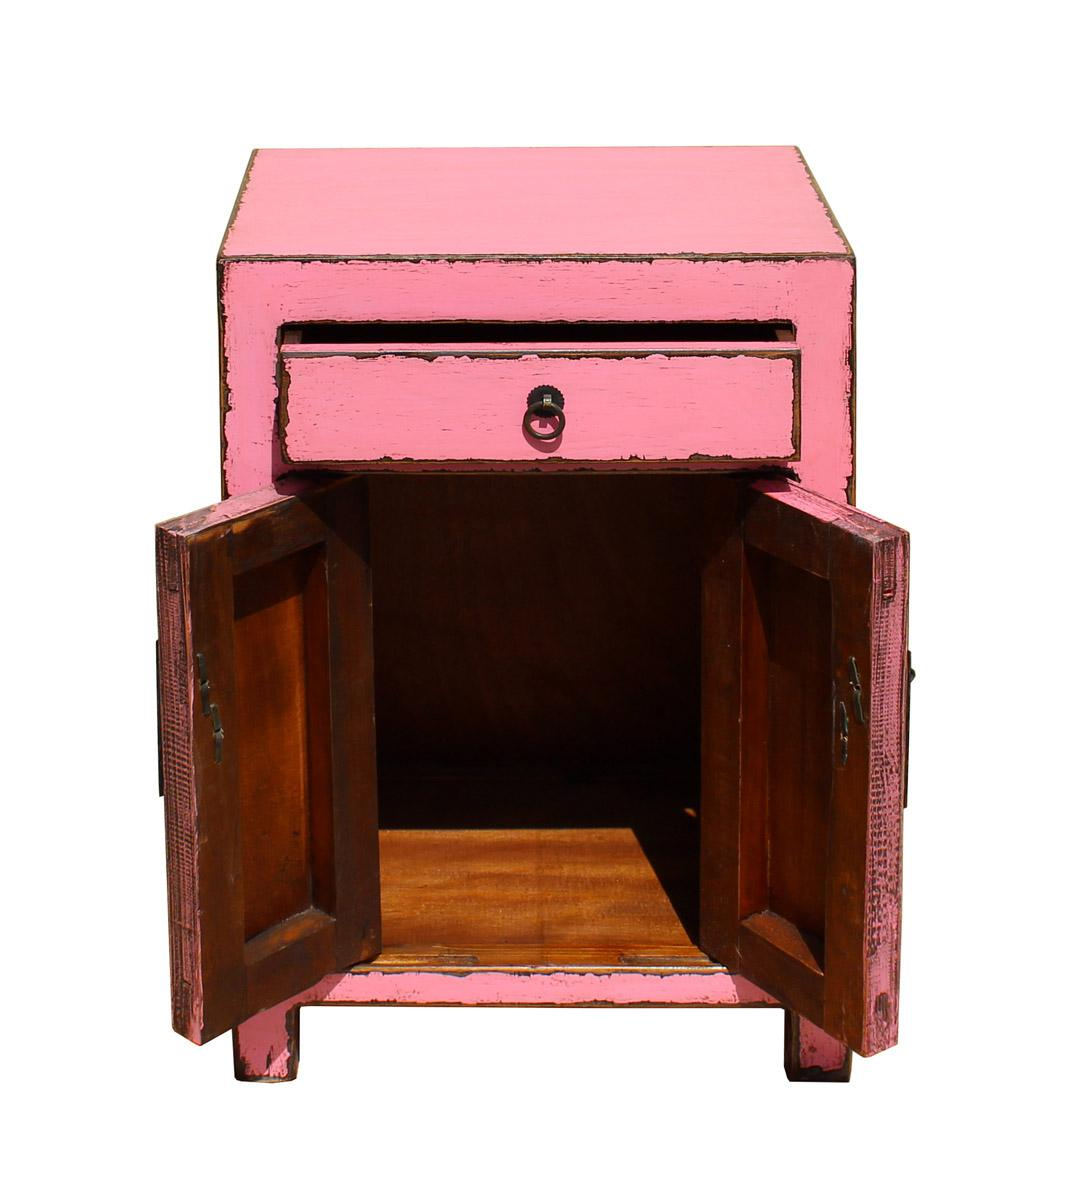 Chinese Distressed Pink Round Moon Face End Table Nightstand Cs2640   Image  5 Of 7